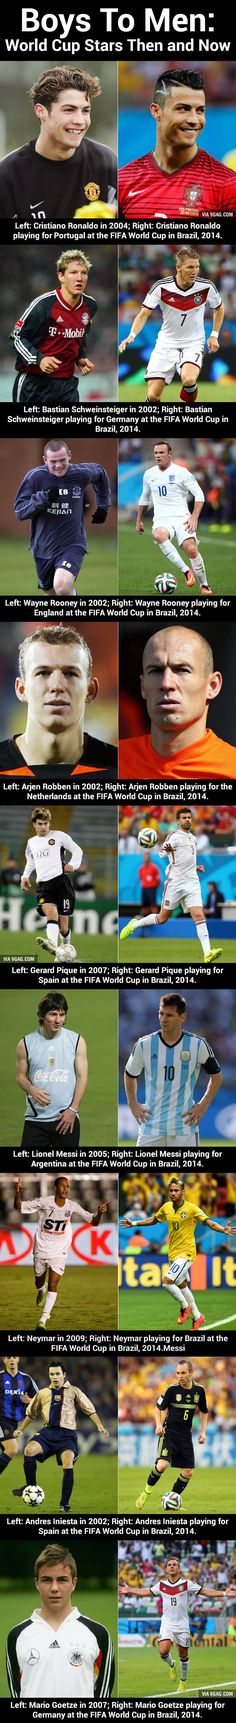 Boys To Men: 9 World Cup Stars Then and Now This is what years of soccer exposure can accomplish...